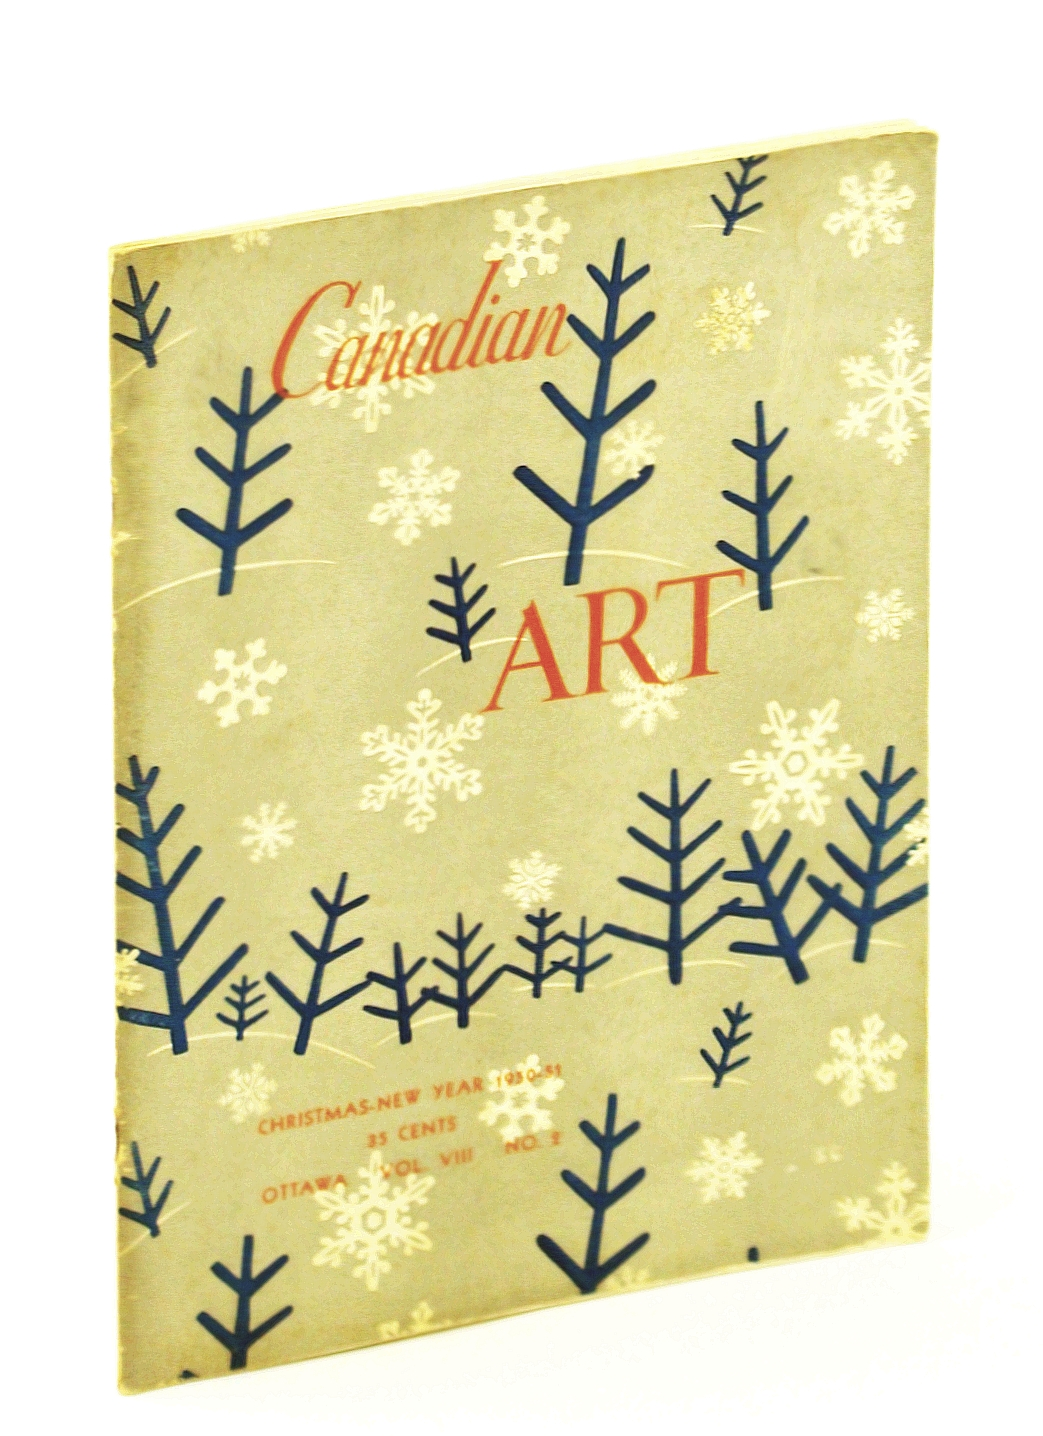 Image for Canadian Art [Magazine] - Fine Arts, Architecture, Graphic Arts, Design: Christmas - New Year 1950-51 [1951], Vol. VIII, No. 2  - Will Ogilvie / Robert Hurley